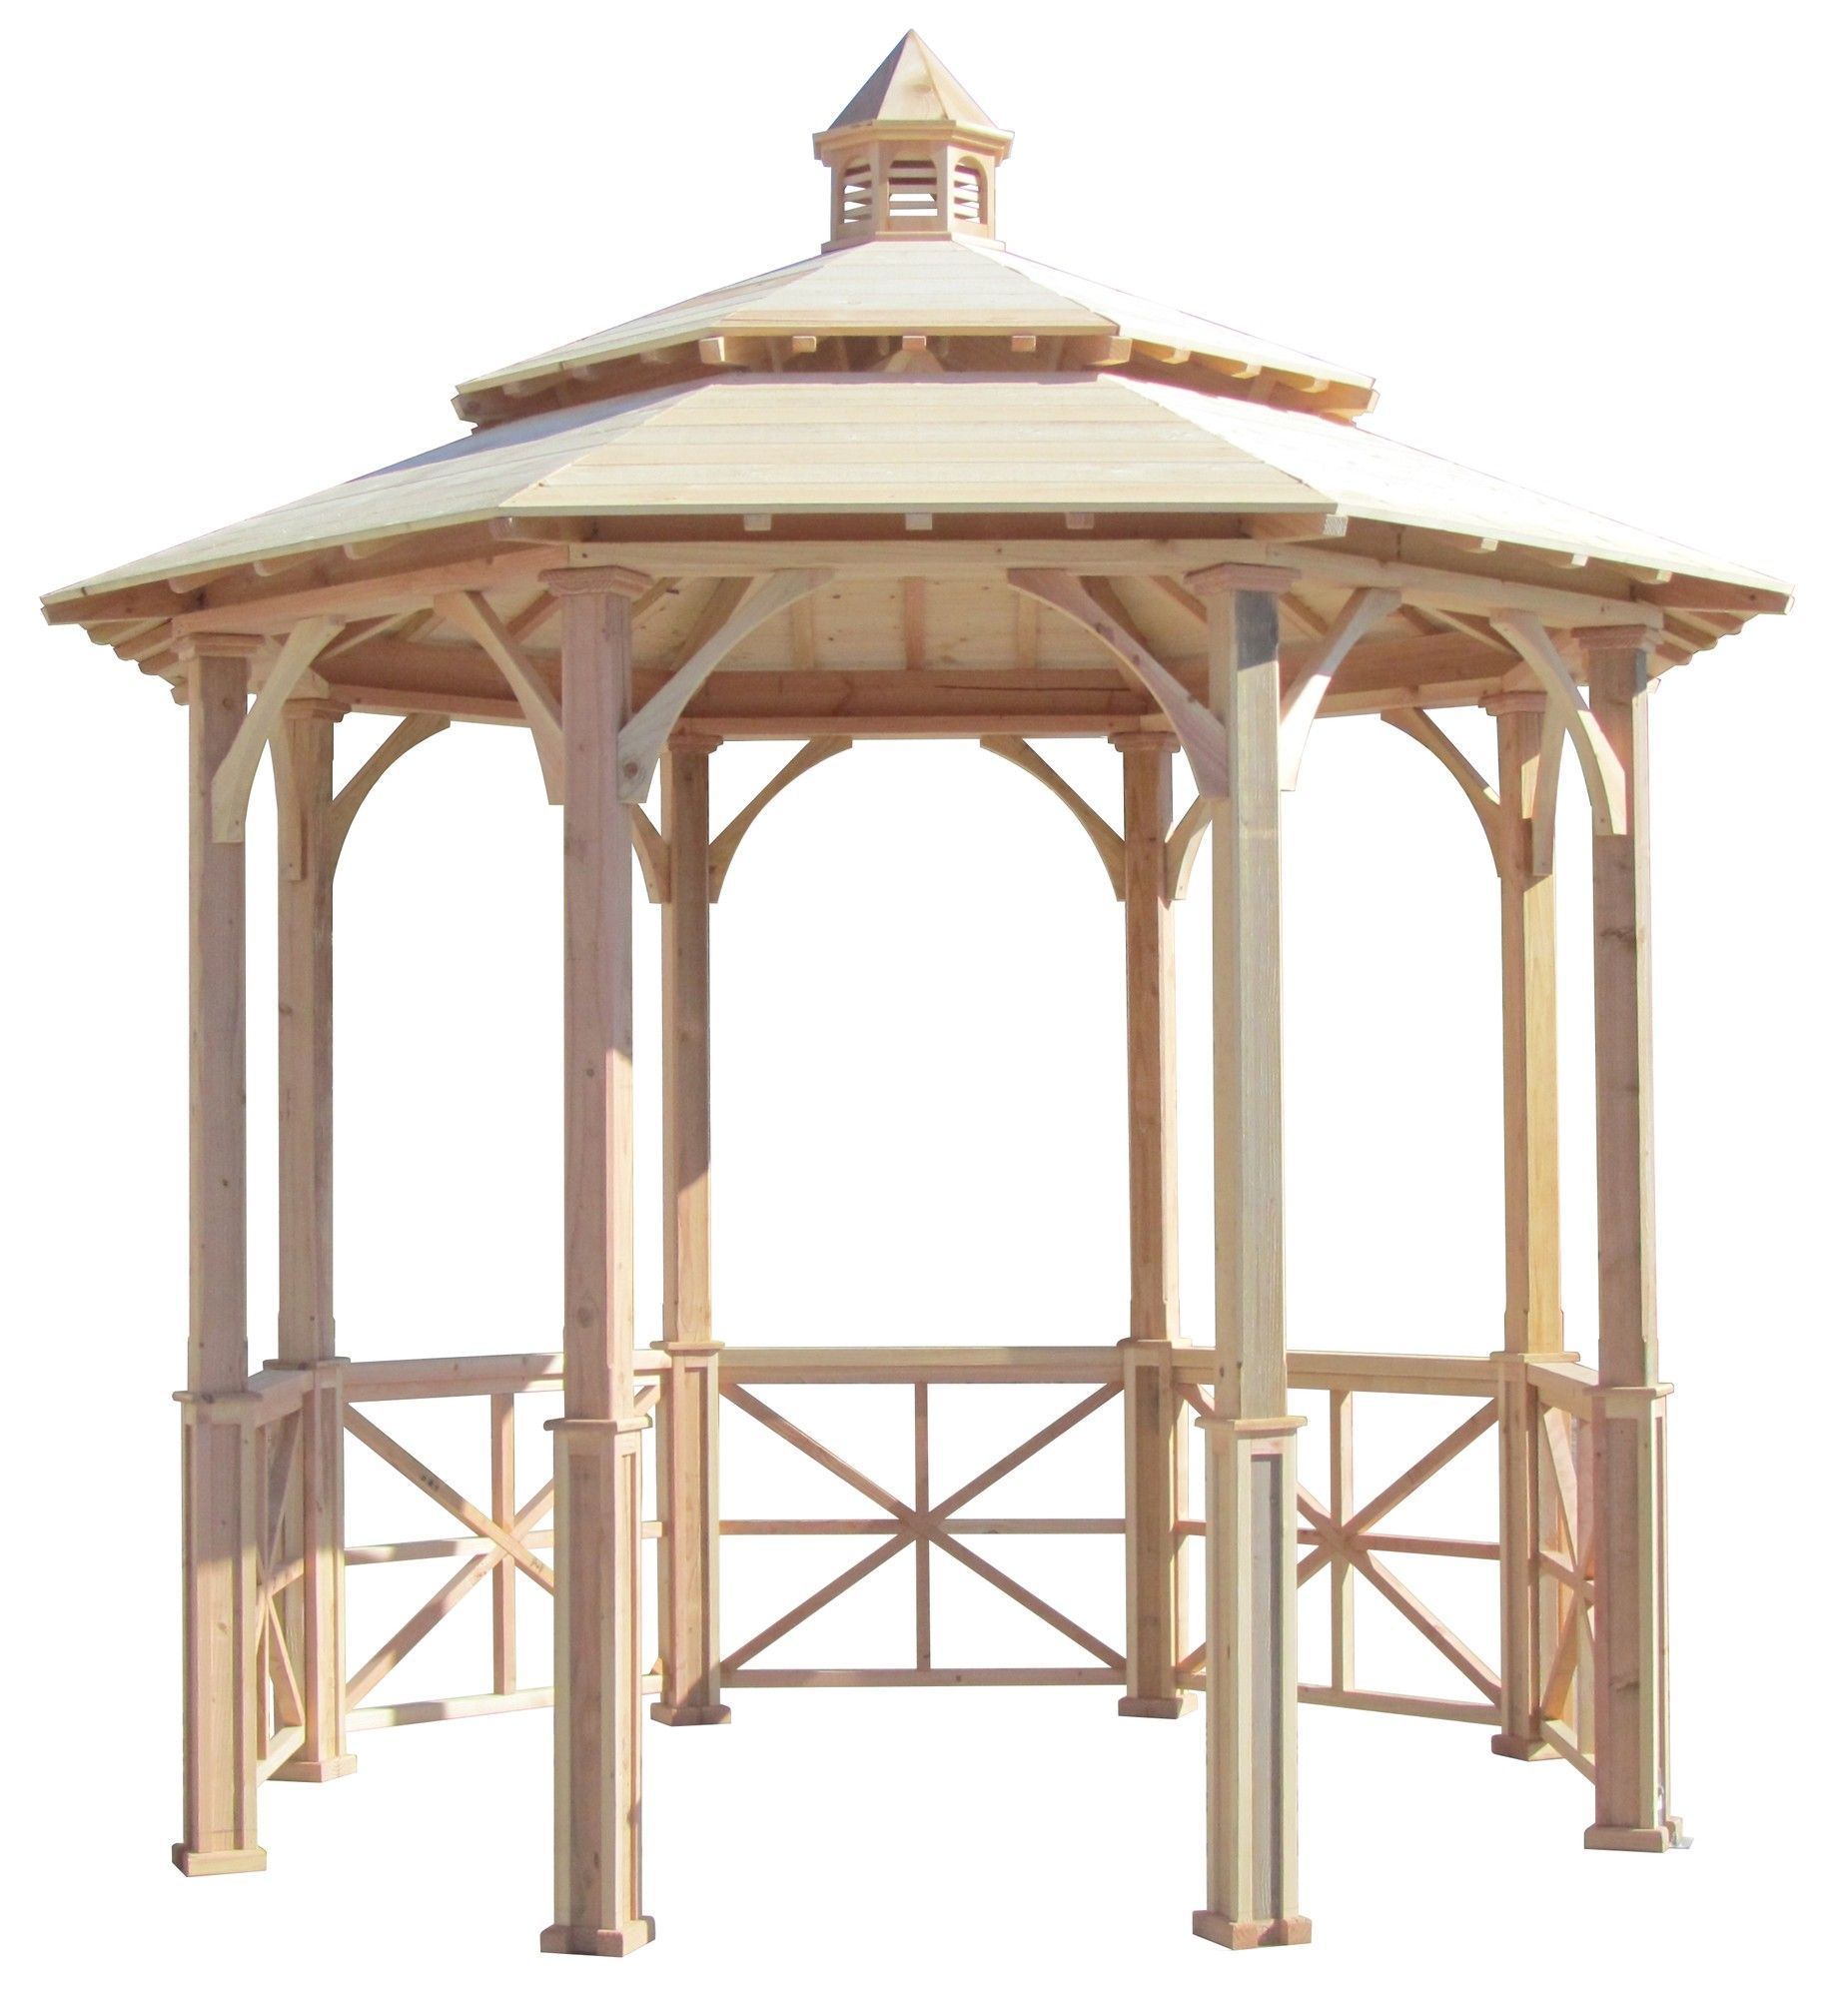 Features: -No more tilting gazebos or unsightly shims! Adjustable